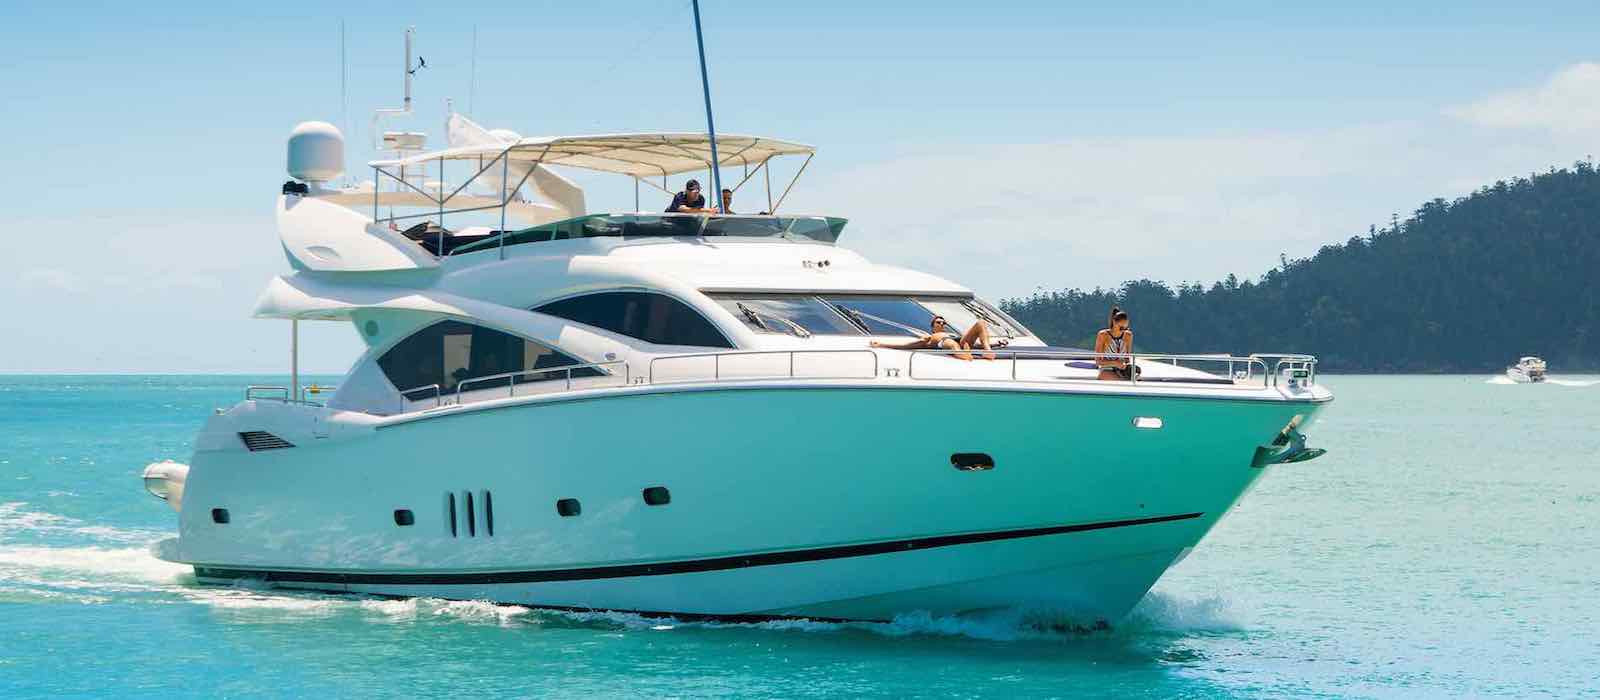 Alani luxury boat hire